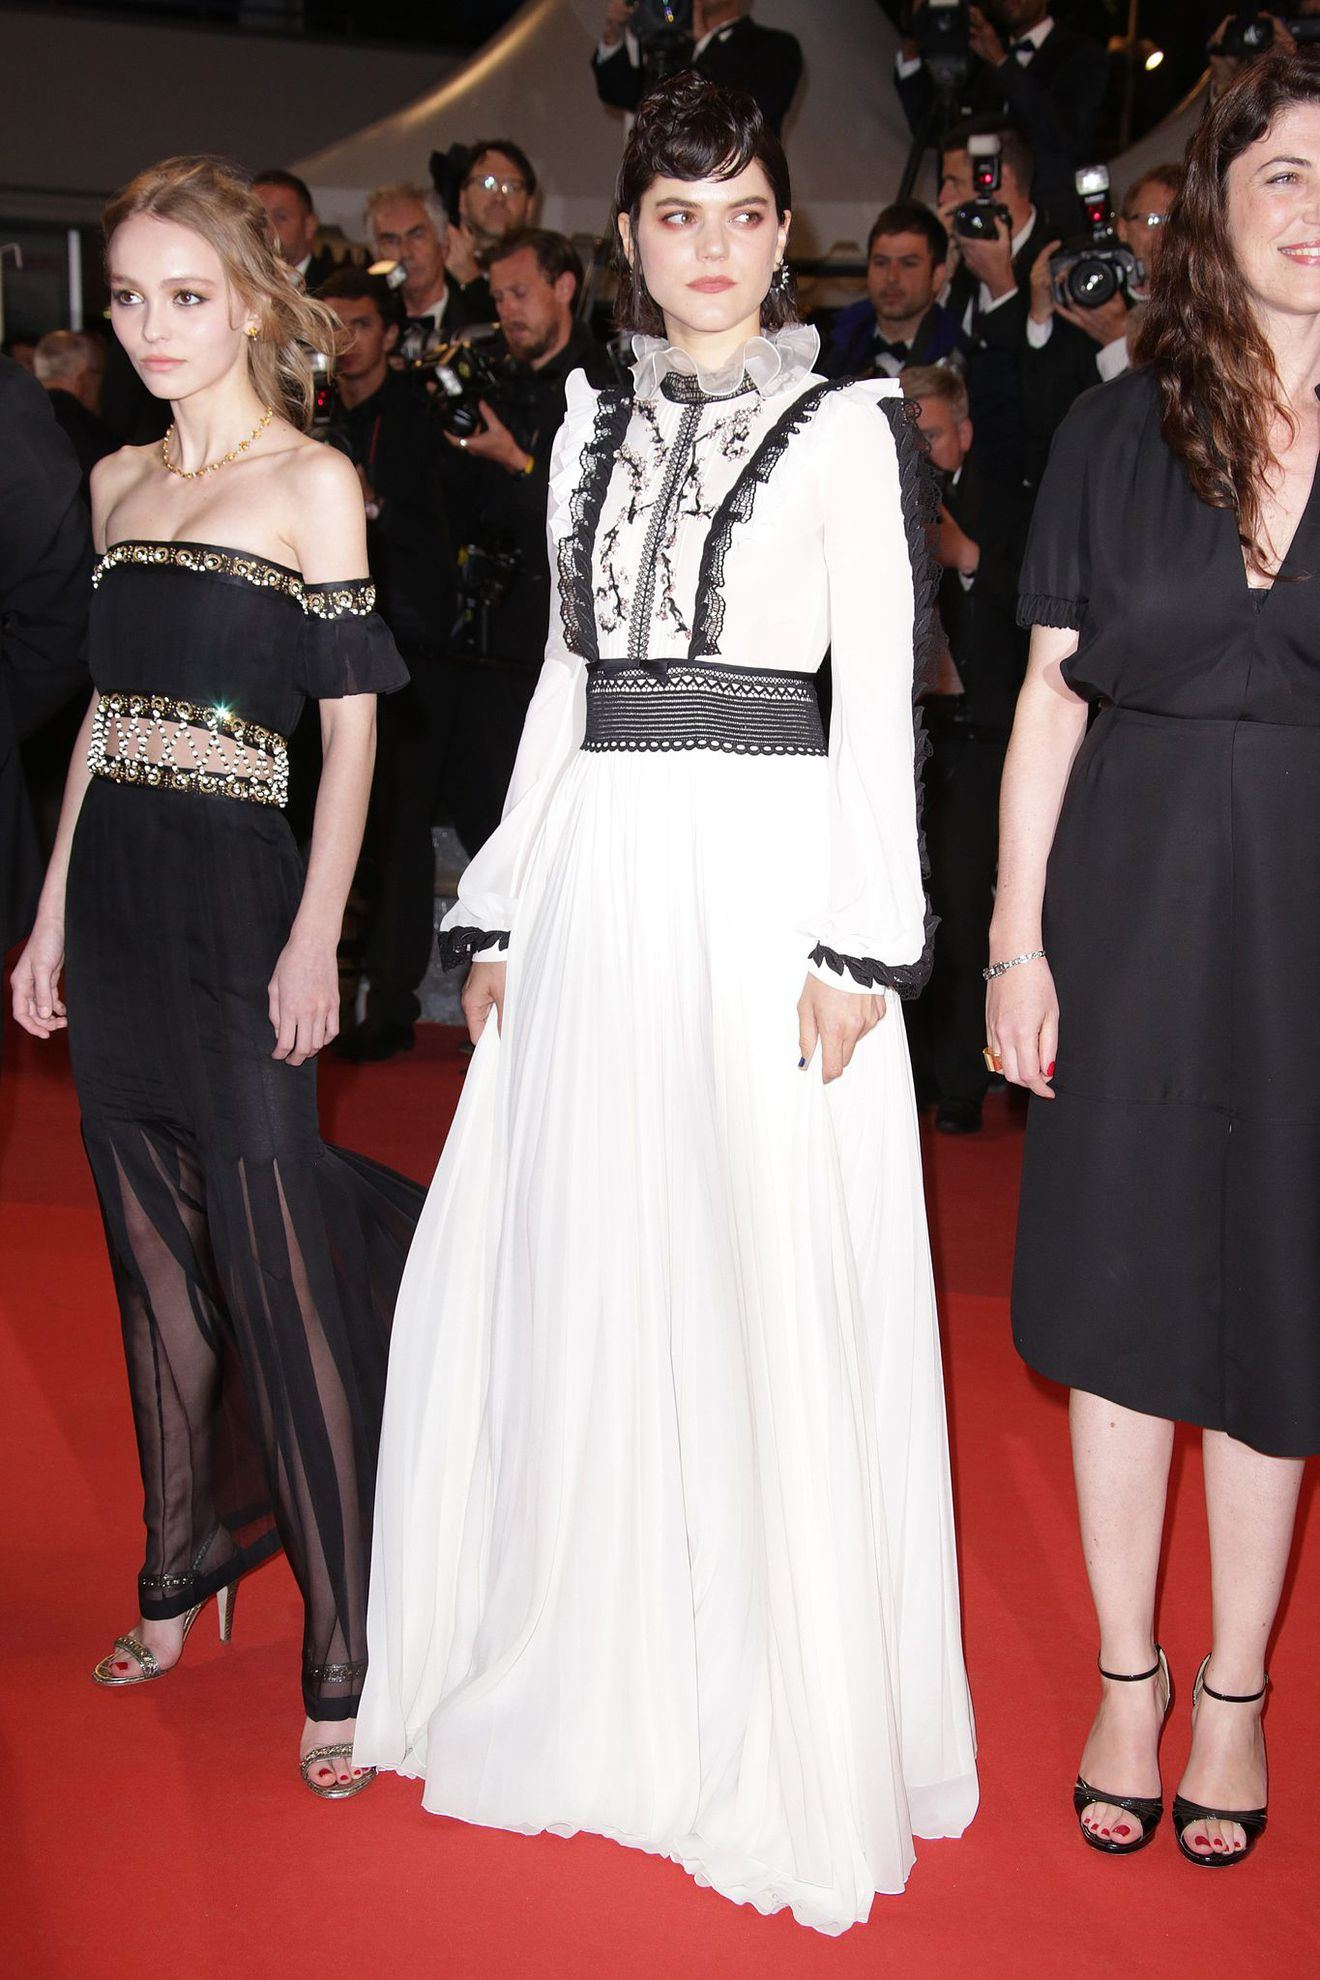 lily rose and soko at cannes